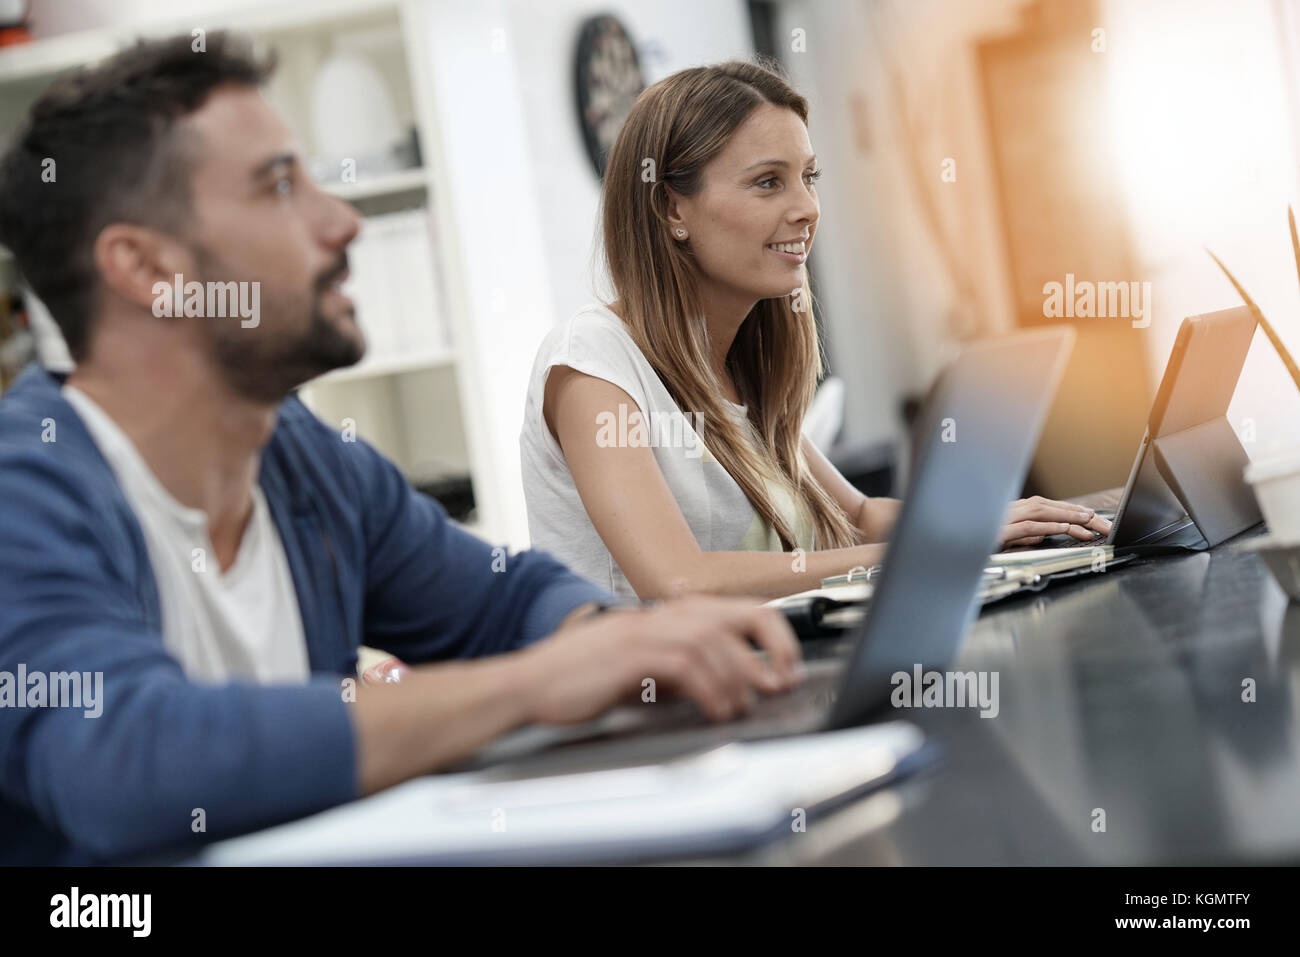 Trendy young people working in co-working office - Stock Image